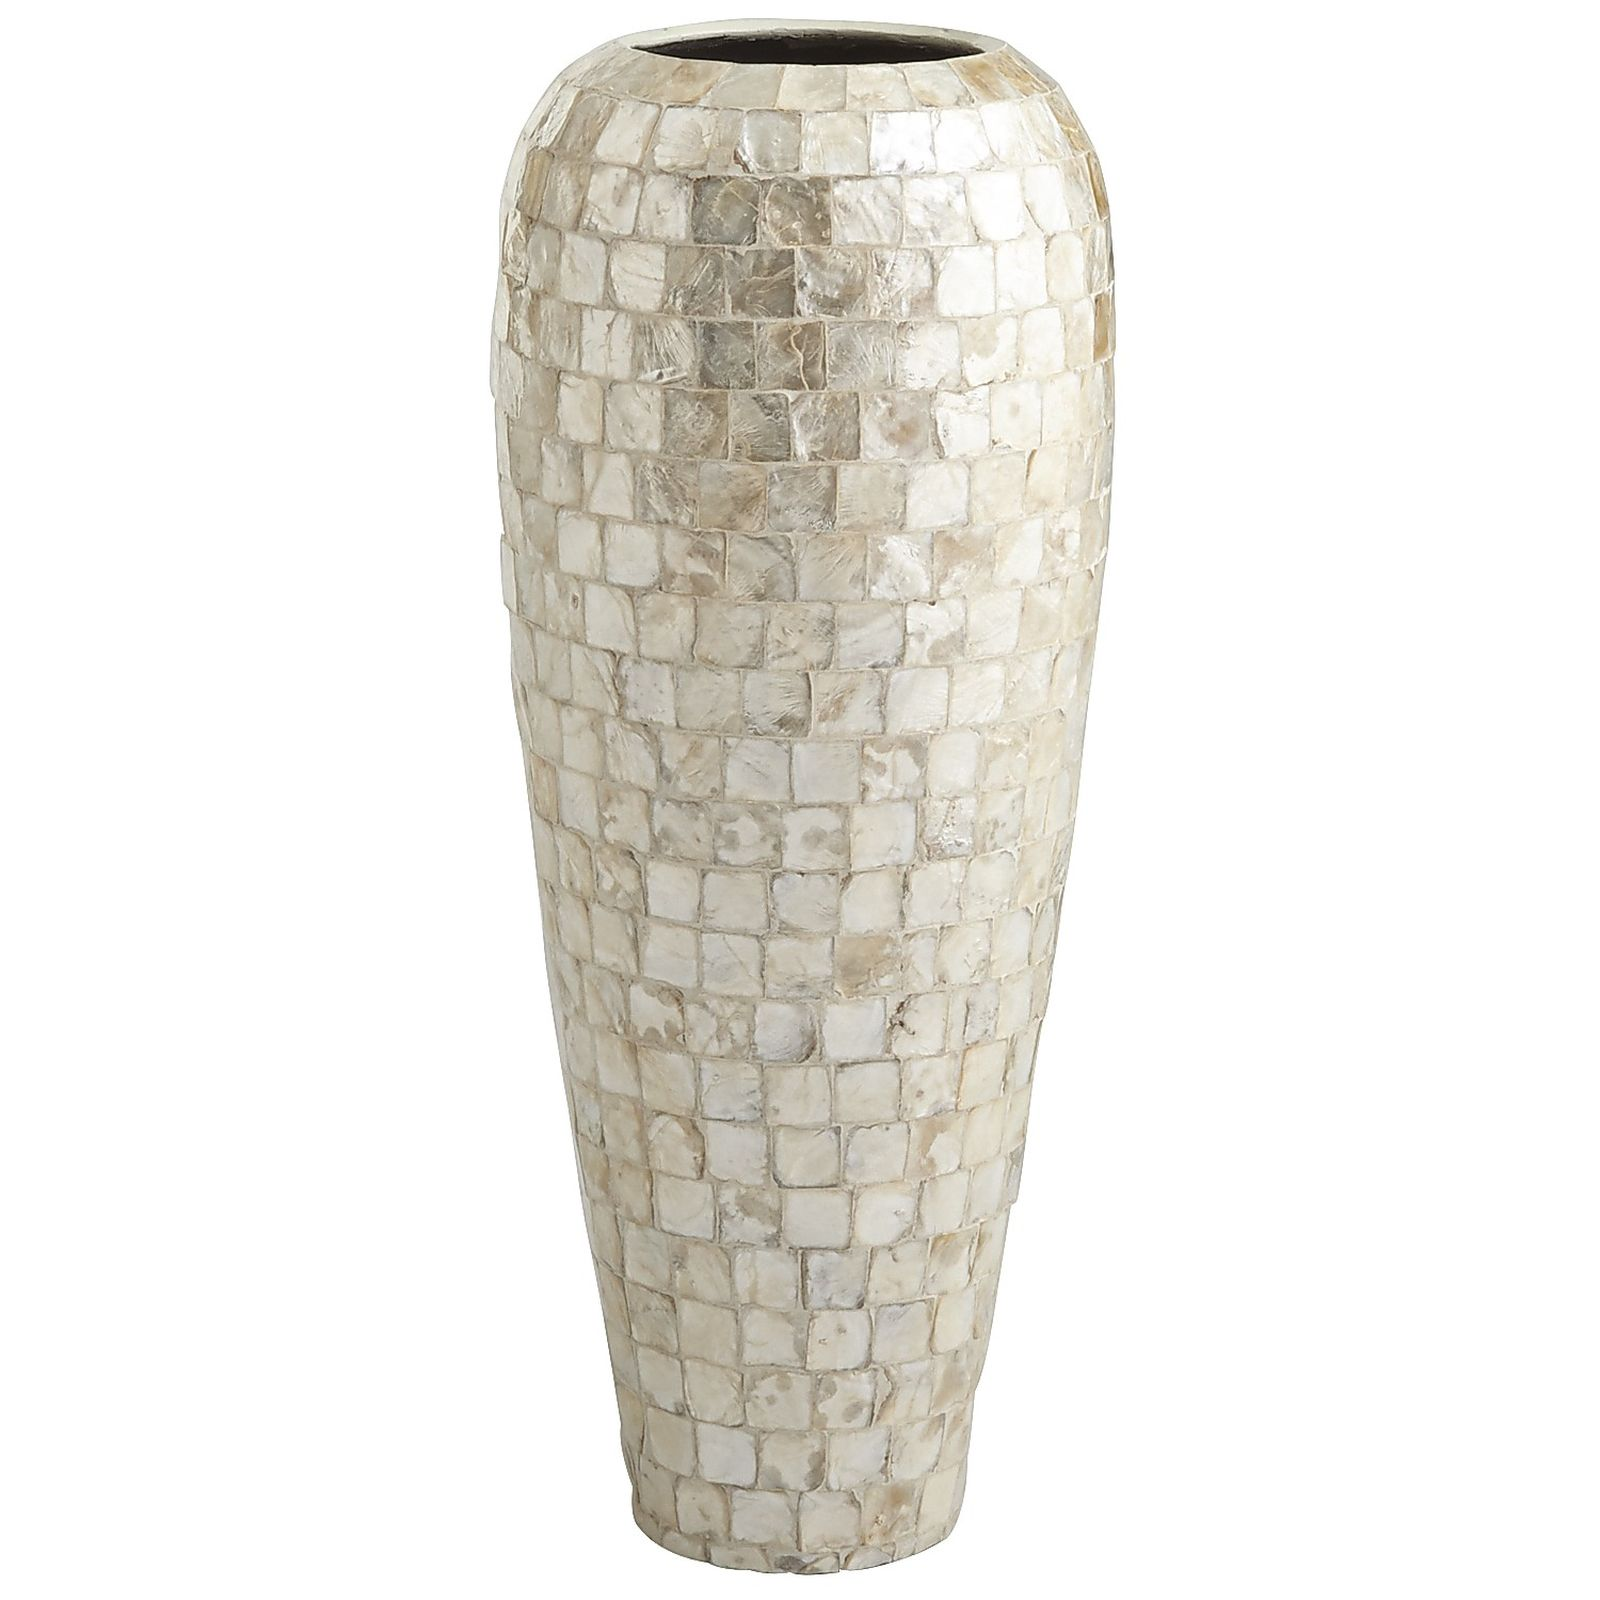 Fascinating capiz shells wall mirror gold with light capiz shells for your home lighting ideas